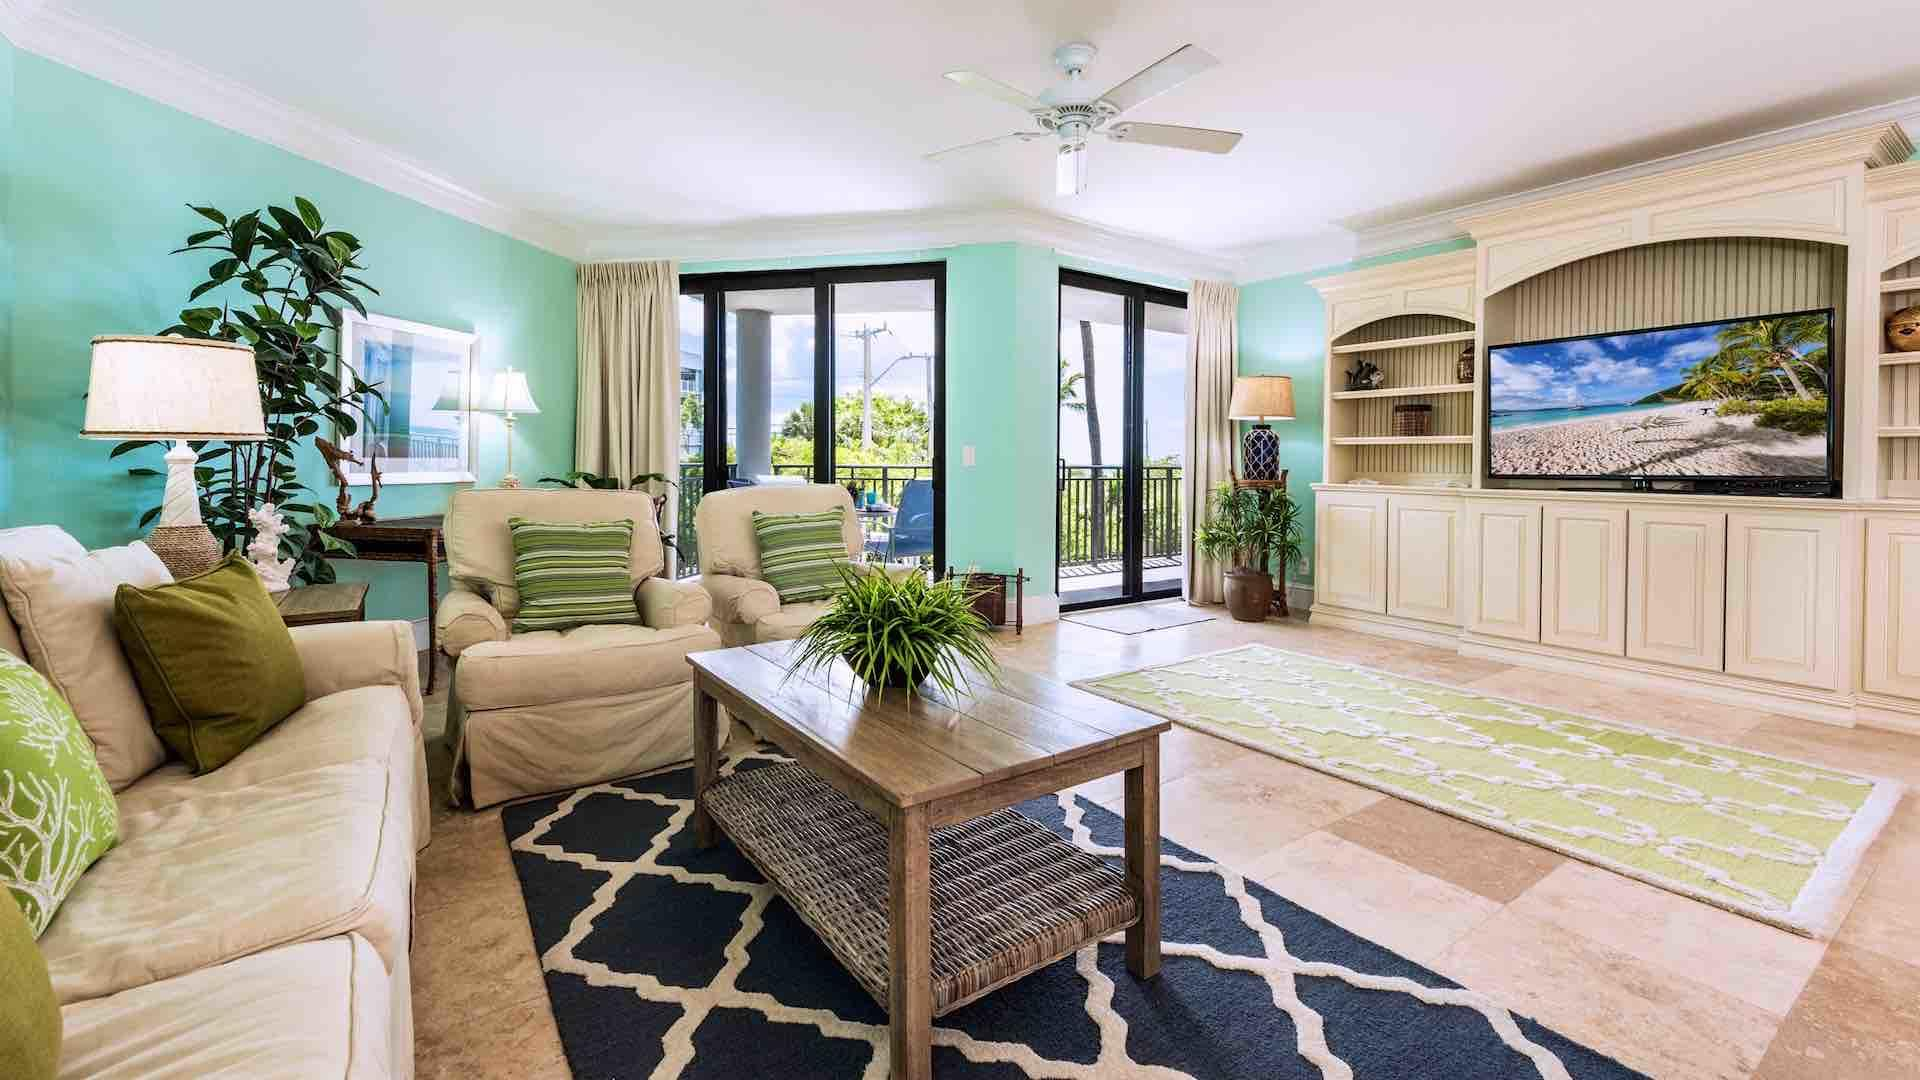 The living room has a large flat screen TV and plenty of comfortable seating options...